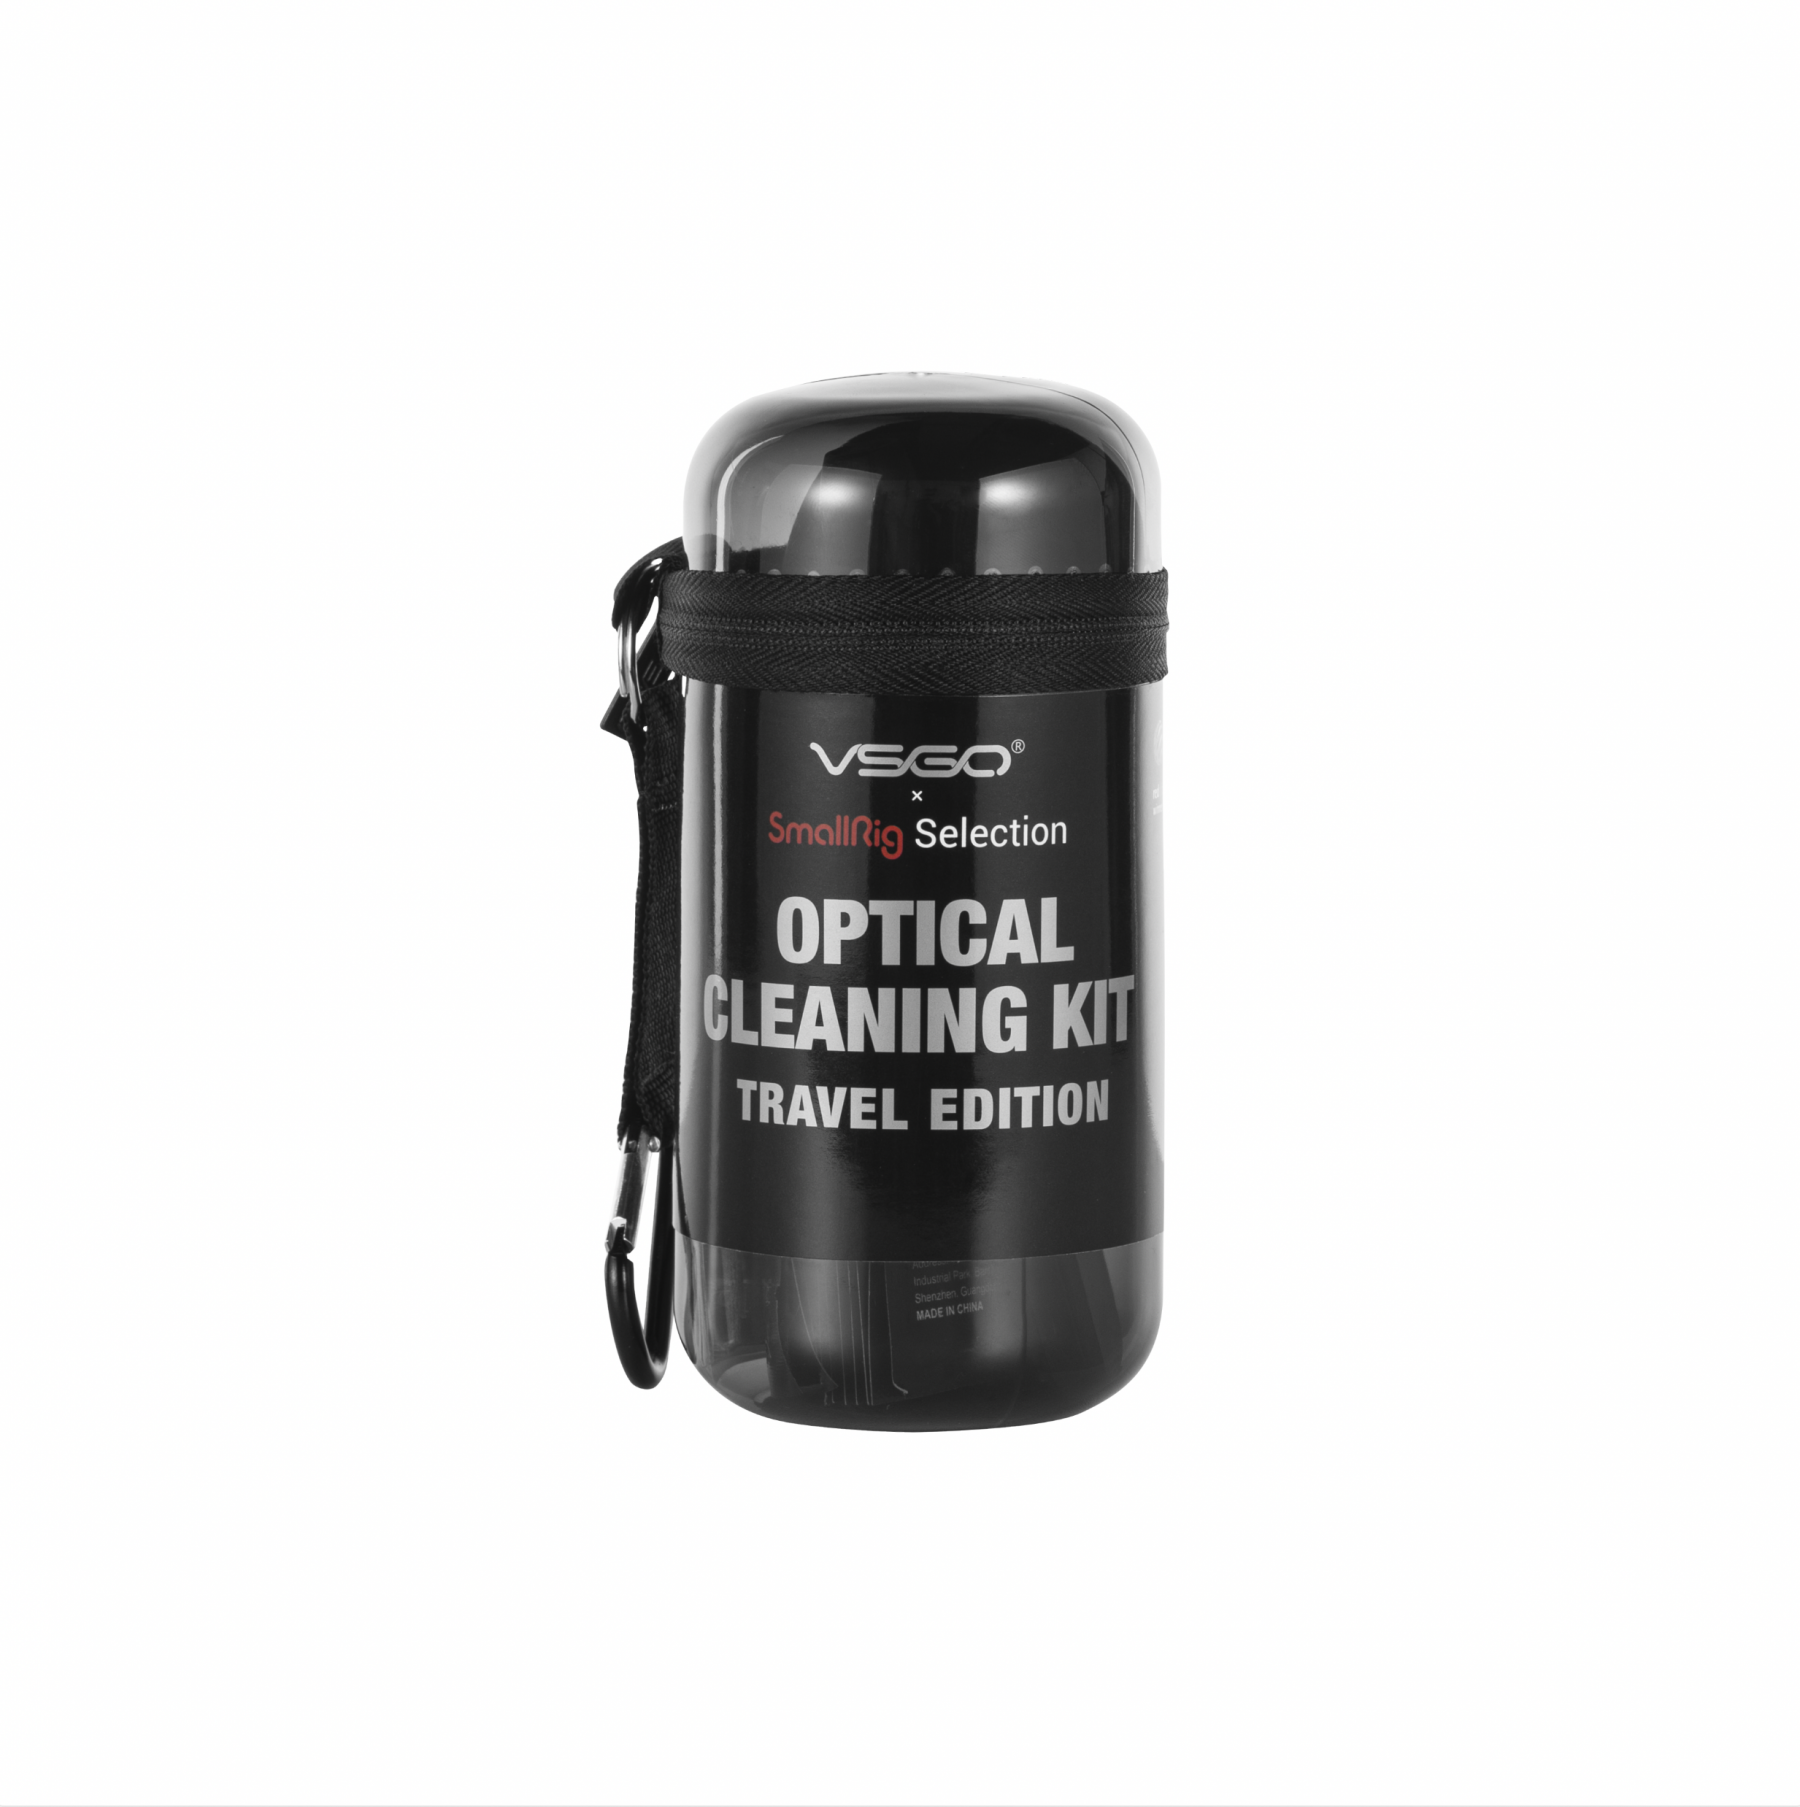 VSGO&SmallRig Selection Portable Optics Care and Cleaning Kit 3307